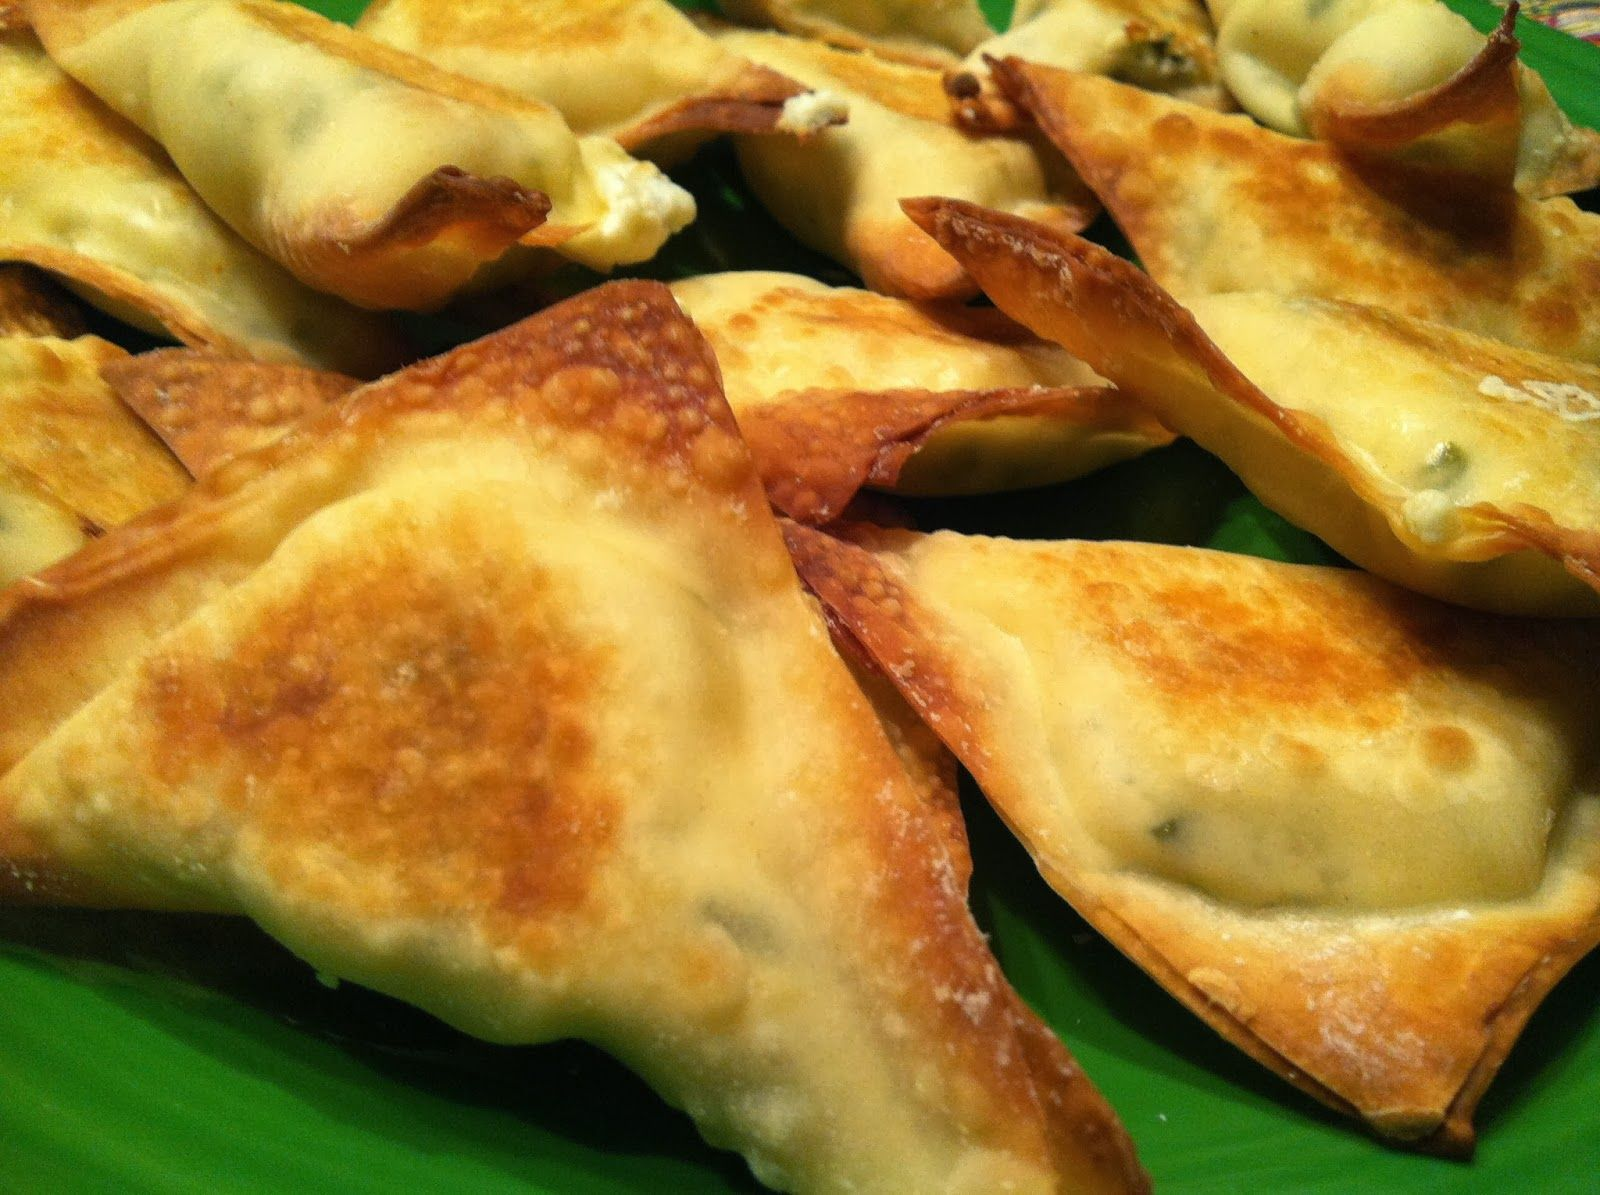 Baked Cream Cheese Wontons Weight Watchers Inspired Foodlovemnblogspot 1 Point Plus